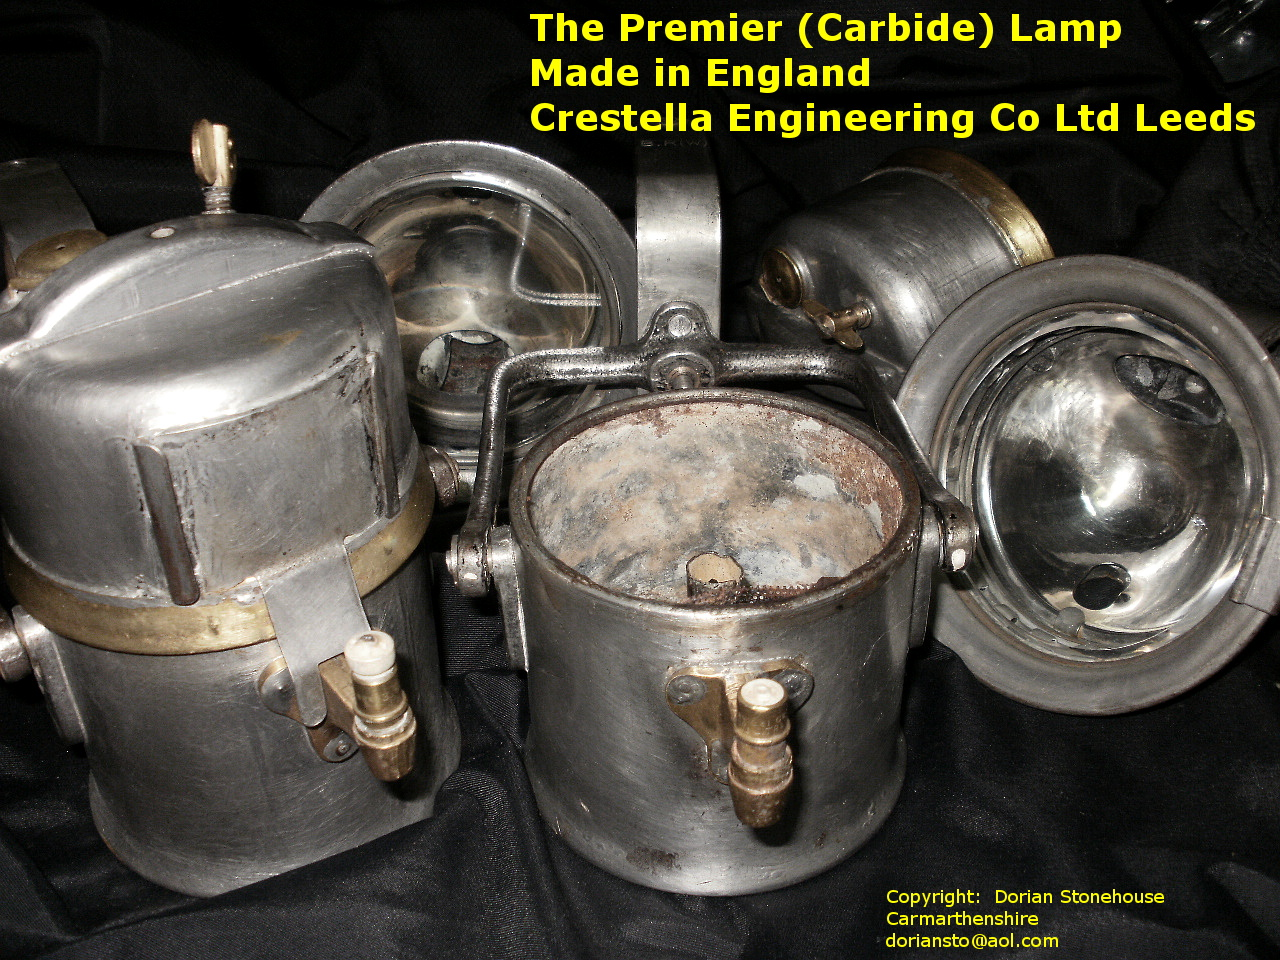 Premier carbide lamp made in england crestella engineering co ltd next job is to clean out the gas jets before filling the bottom tank with calcium carbide aloadofball Choice Image